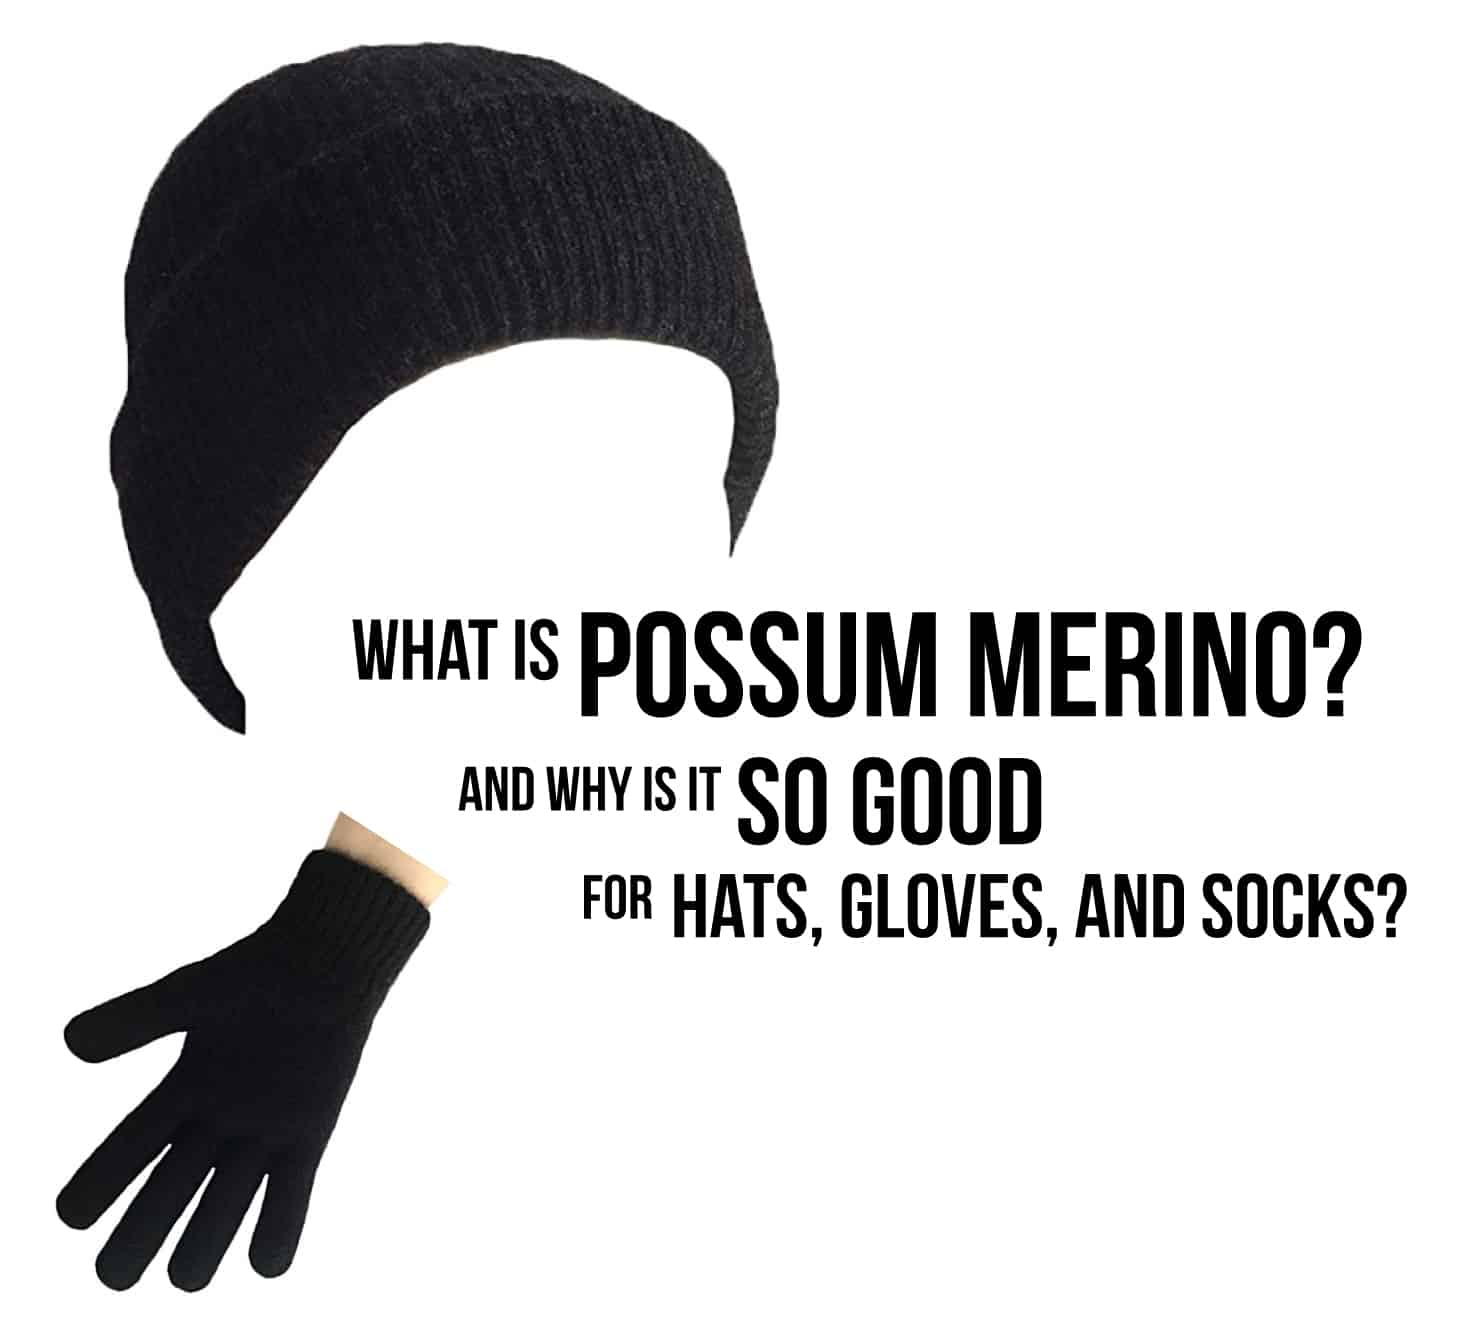 What is Possum Merino And Why Does it Keep You So Warm?